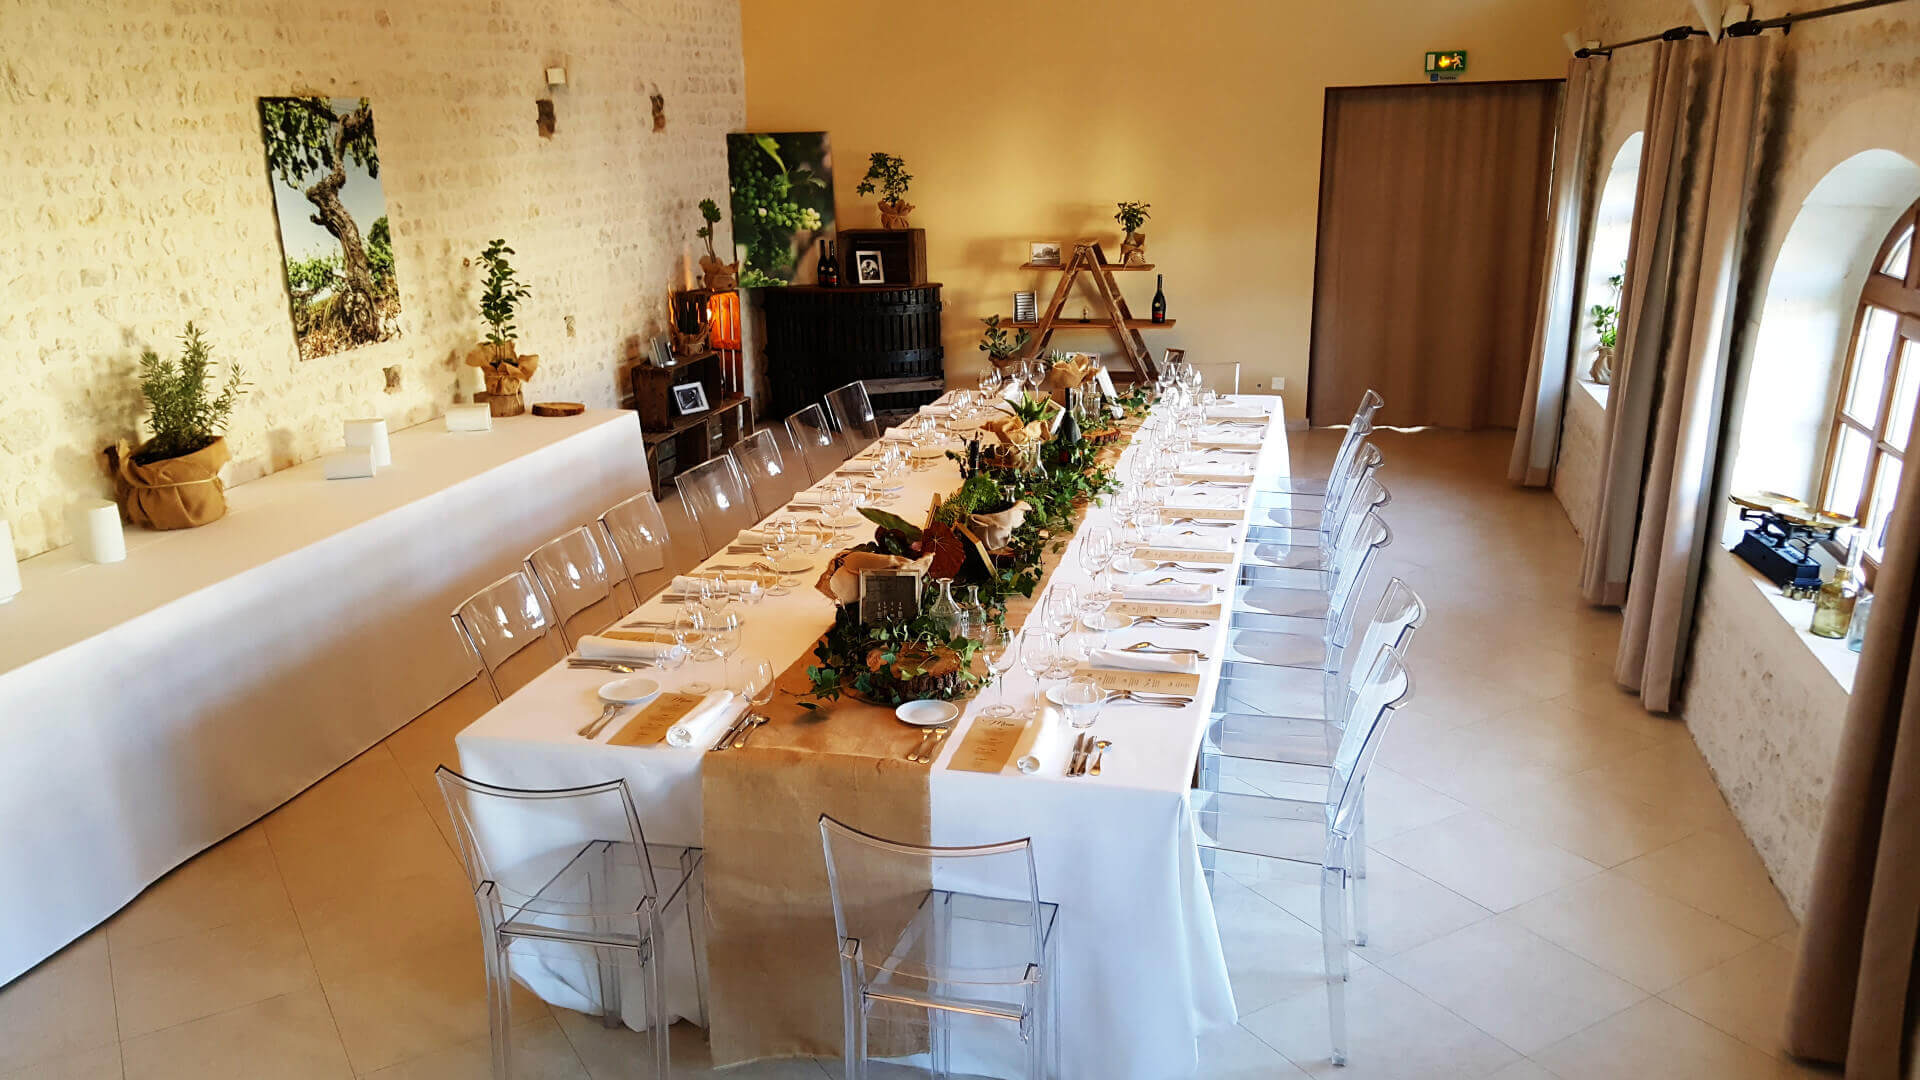 Lunch in a former cellar of cognac during a corporate event